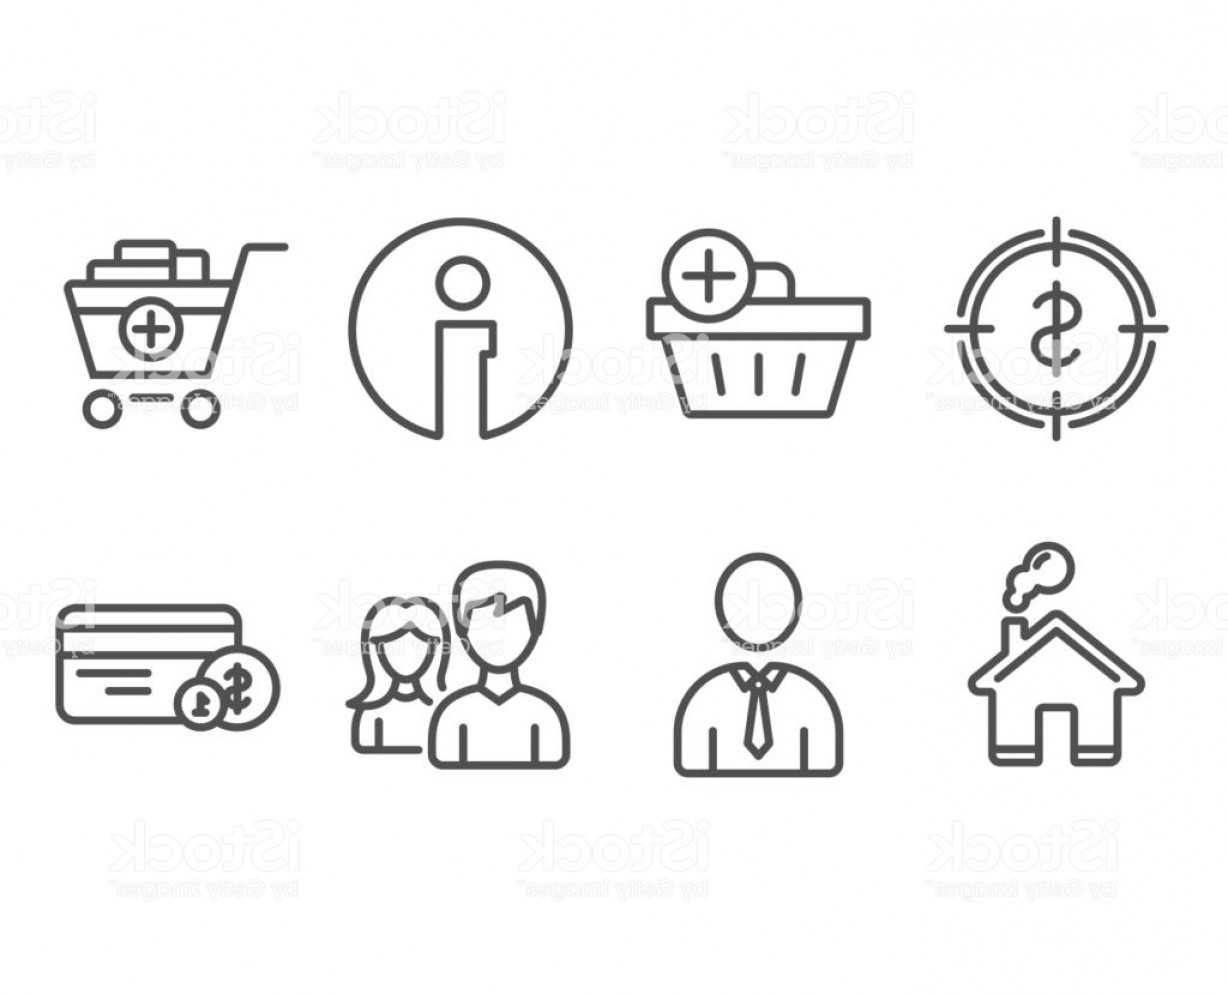 Purchase Vector Art: Dollar Target Add Products And Human Icons Add Purchase Couple And Payment Method Gm